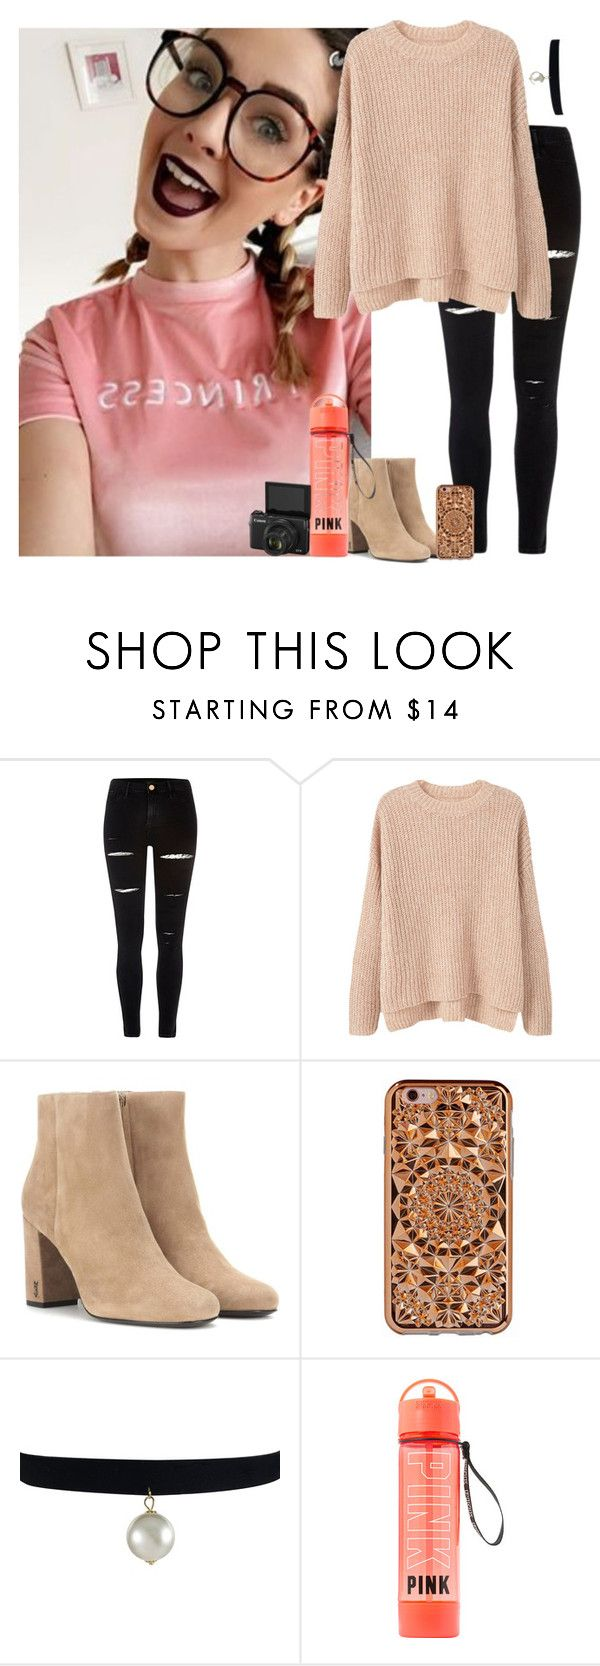 """""""Vlogging w/ Zoe"""" by victoriadrag ❤ liked on Polyvore featuring River Island, MANGO, Yves Saint Laurent, Felony Case, YouTubers, Zoella, ZoeSugg and vlogging"""